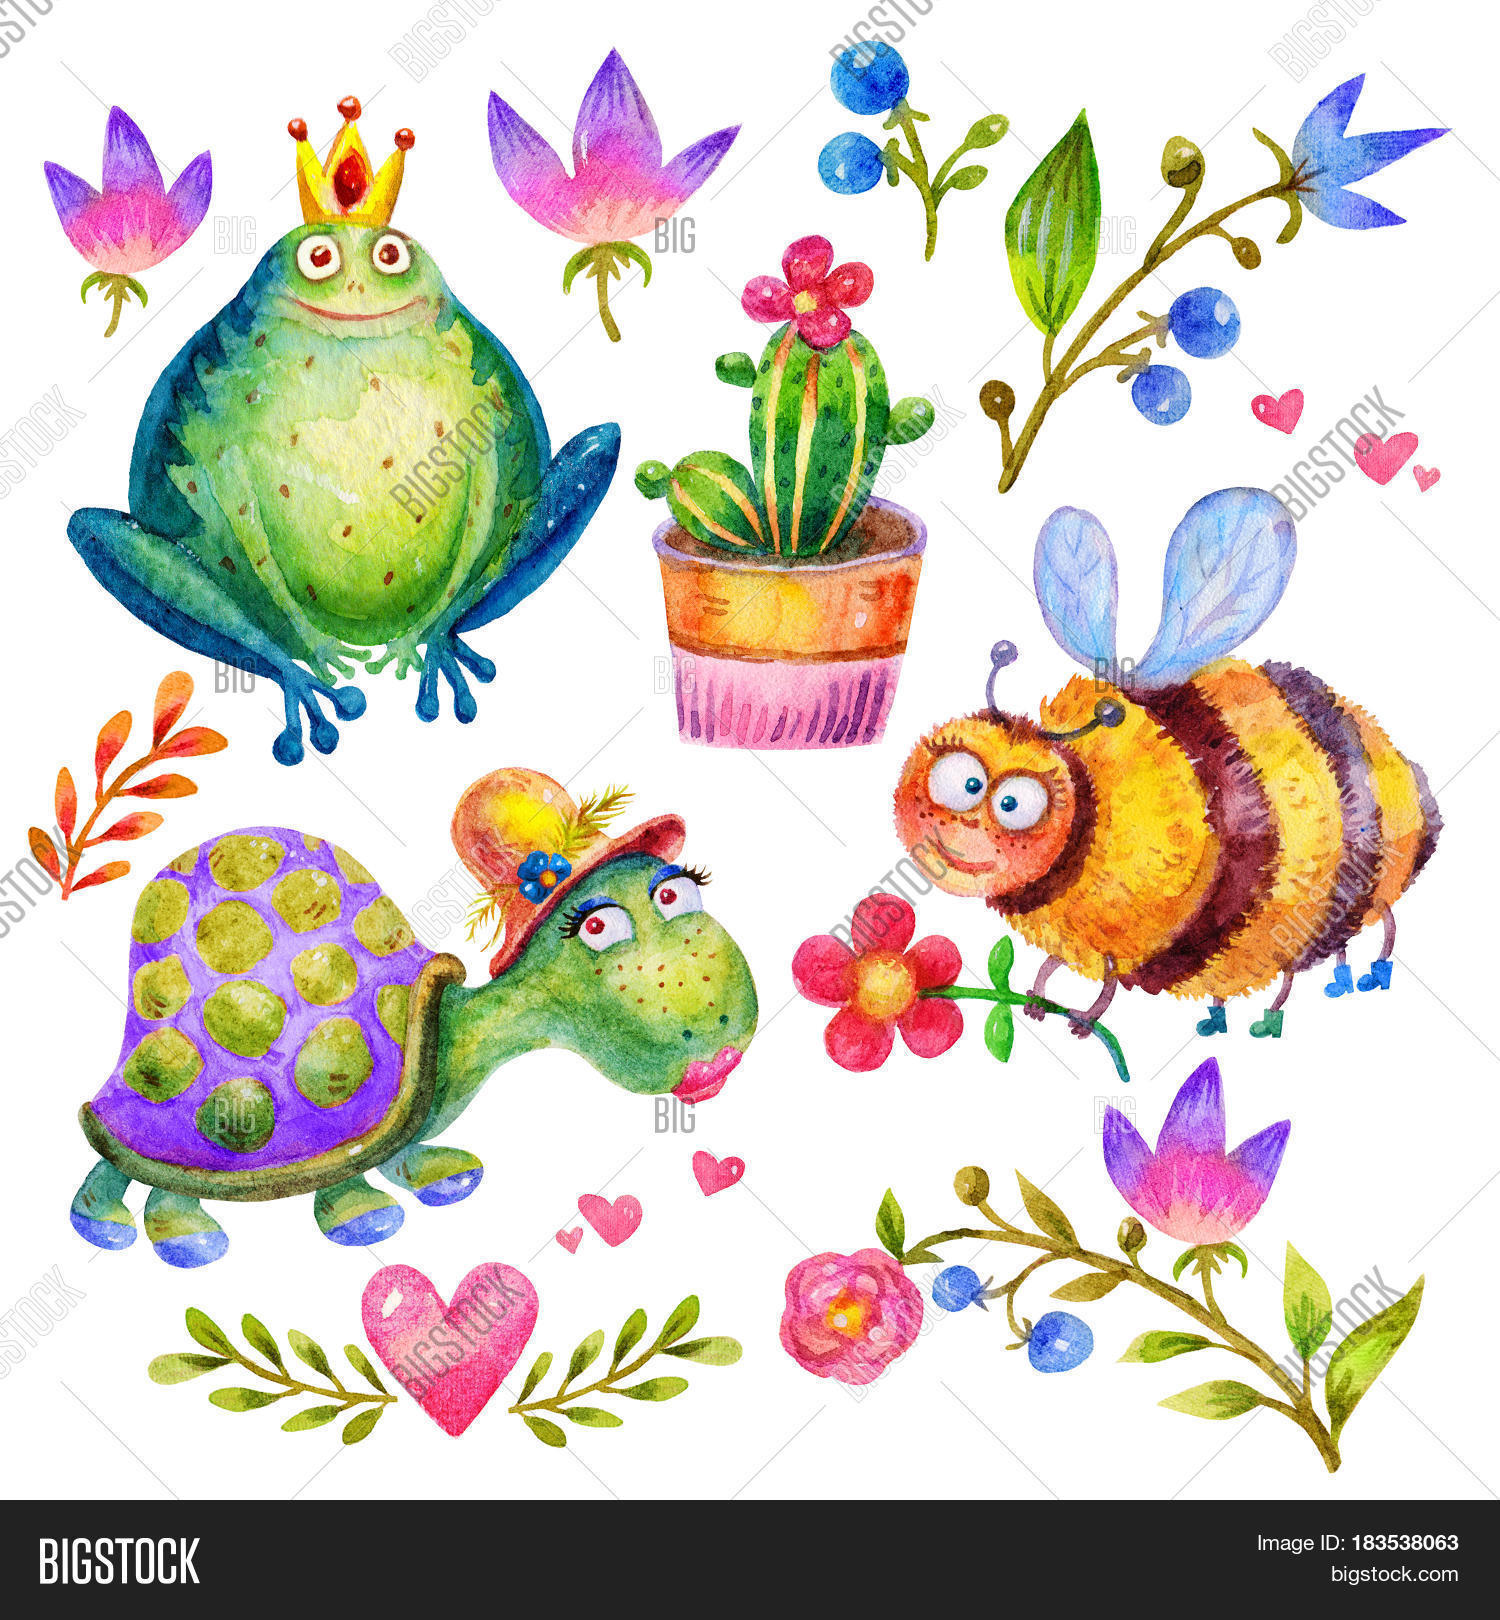 Cartoon watercolor flower set bee image photo bigstock cartoon watercolor flower set bee with flower frog with a crown turtle izmirmasajfo